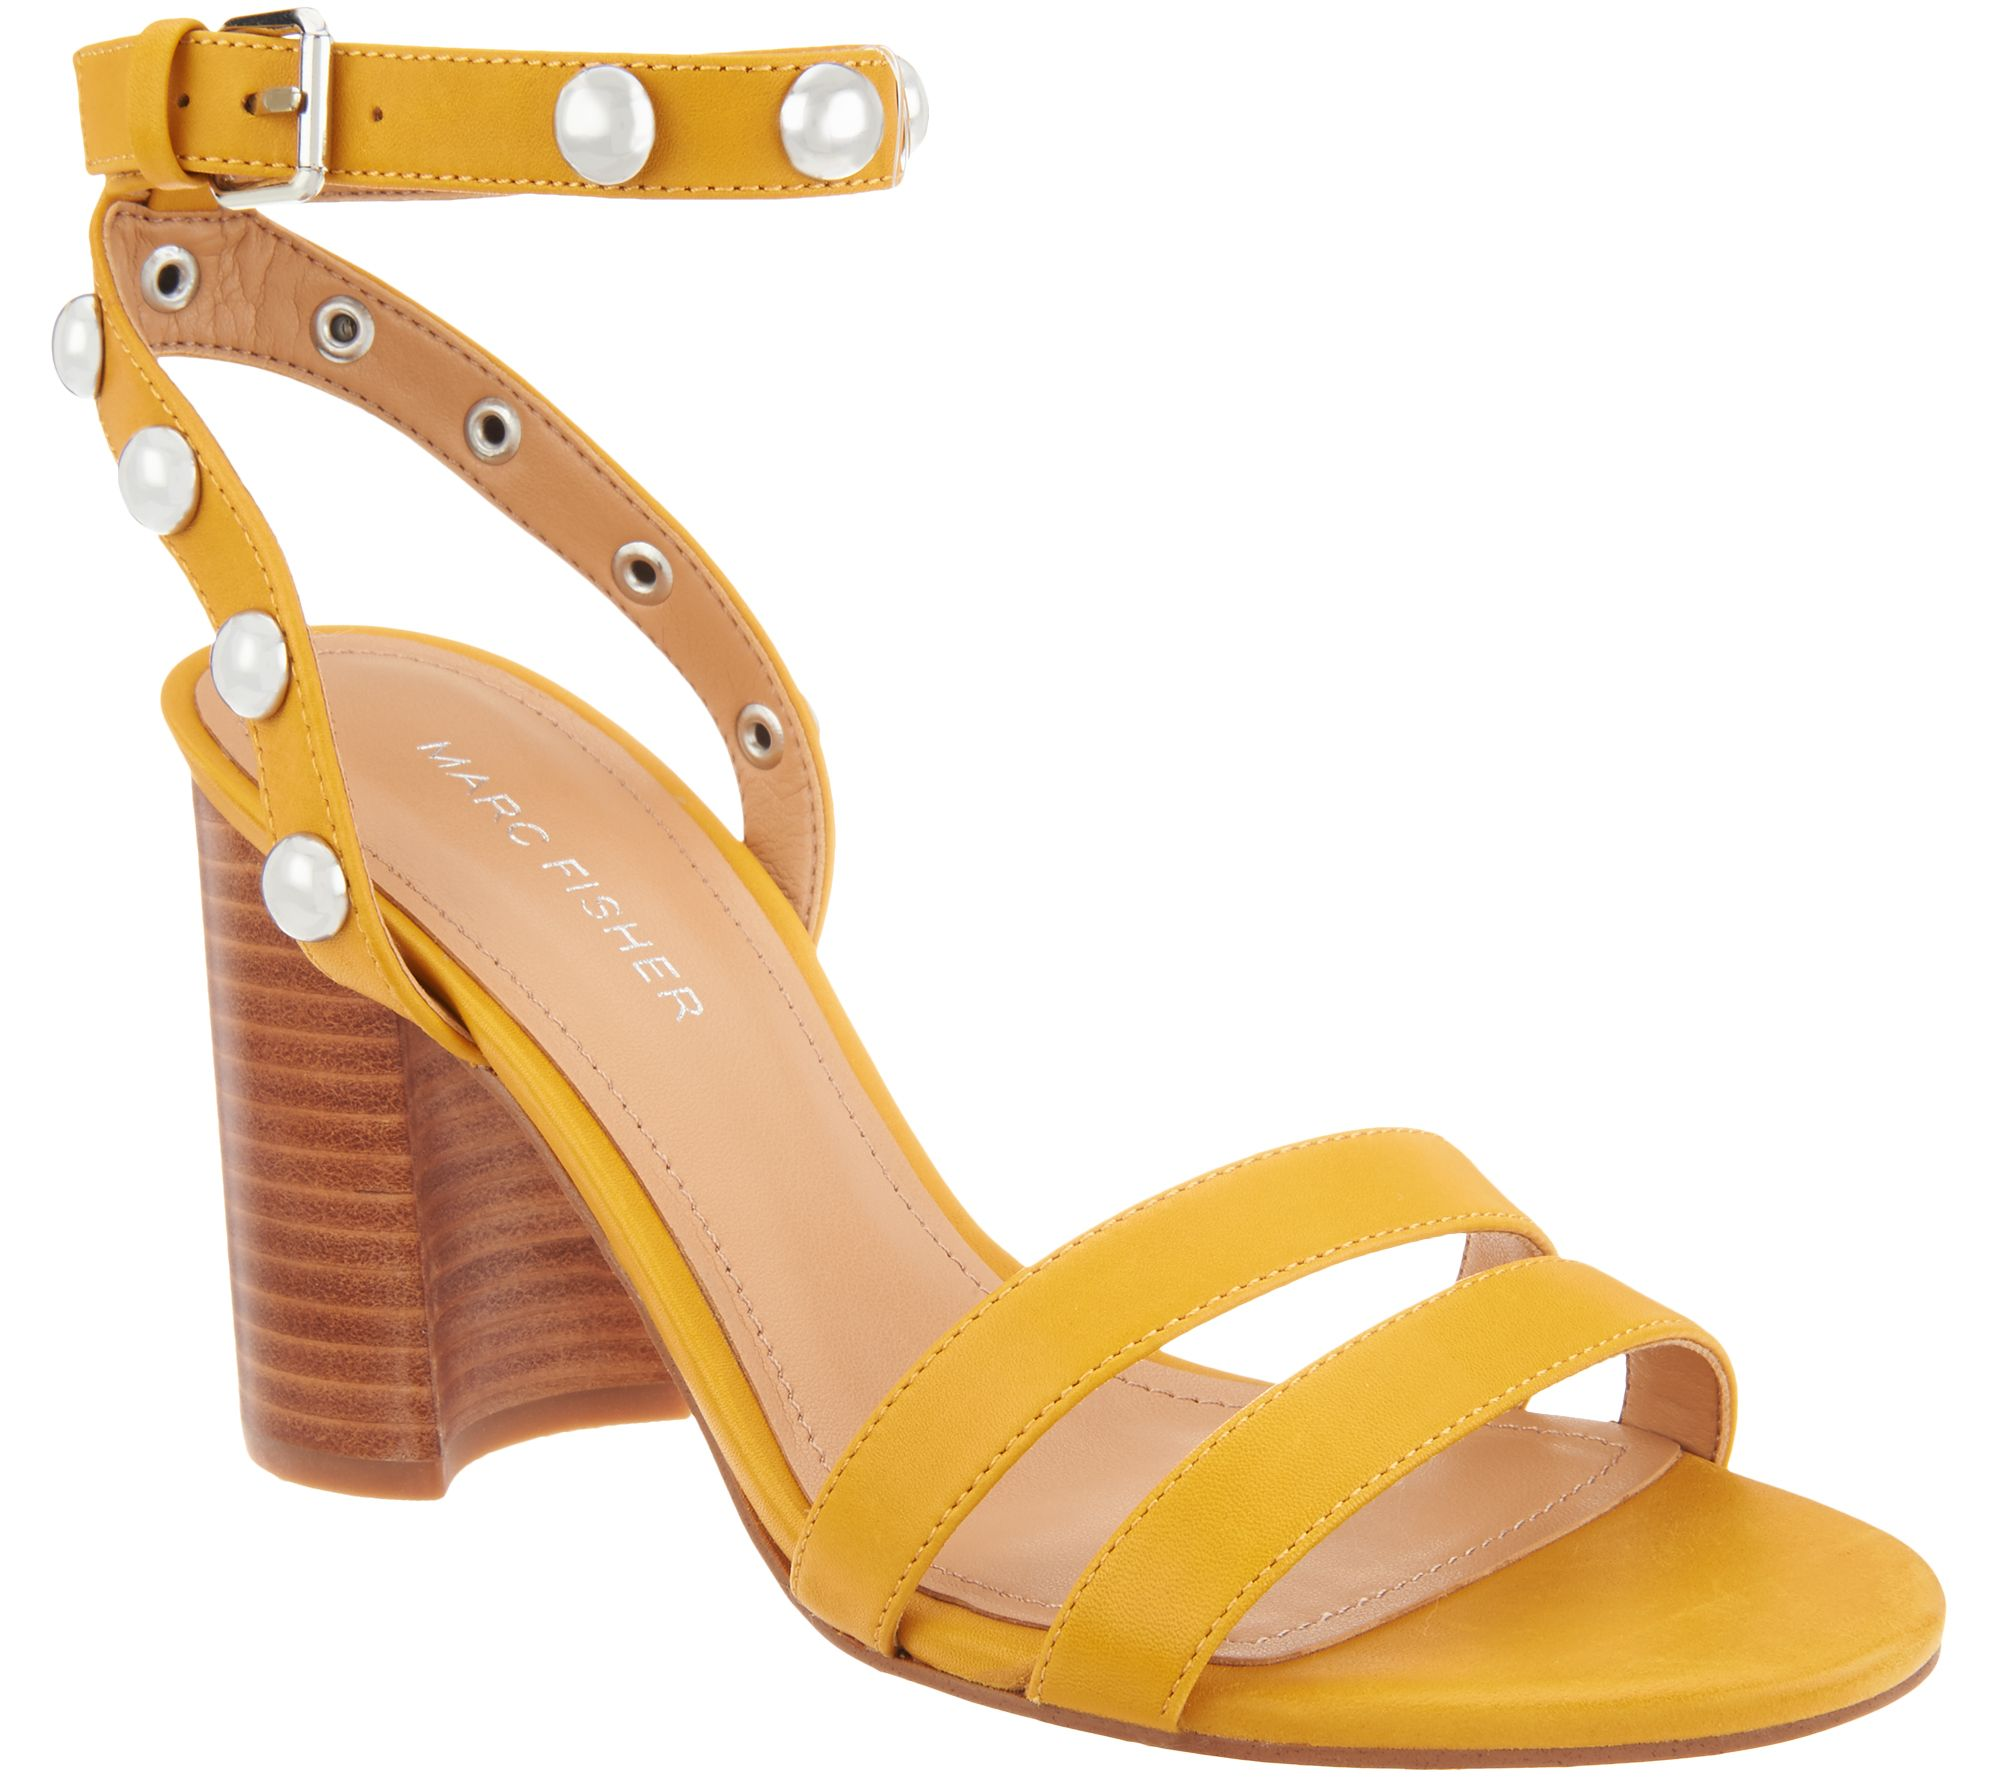 111f1fd71a58fc Marc Fisher Embellished Leather Heeled Sandals - Lantern — QVC.com